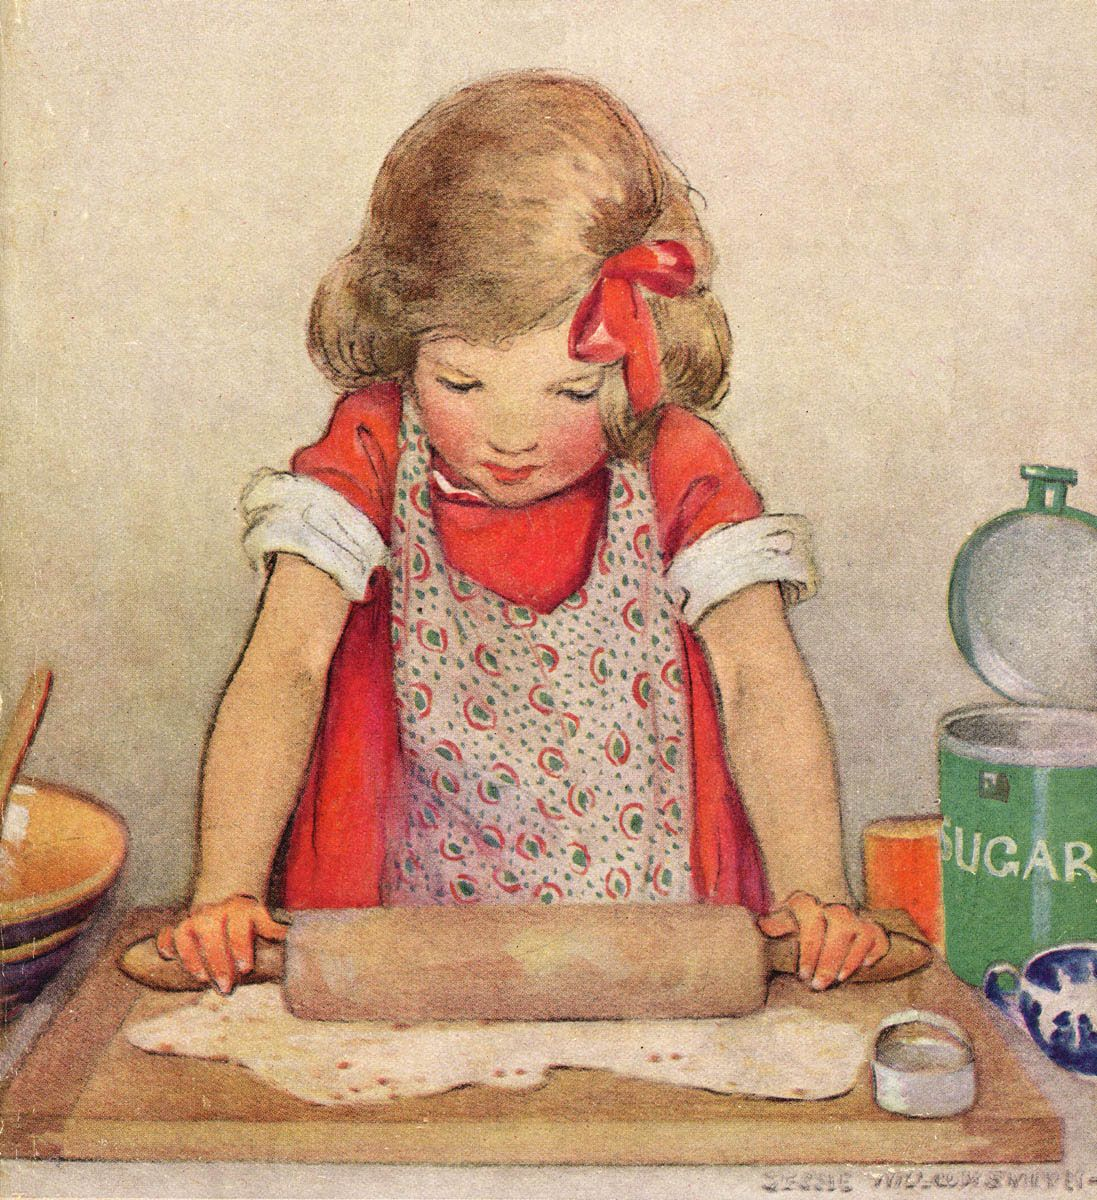 girl with rolling pin ~ this is also the cover of a vintage cook book for children. I have the book ~ I would tell you the name but we just moved & it is still packed.